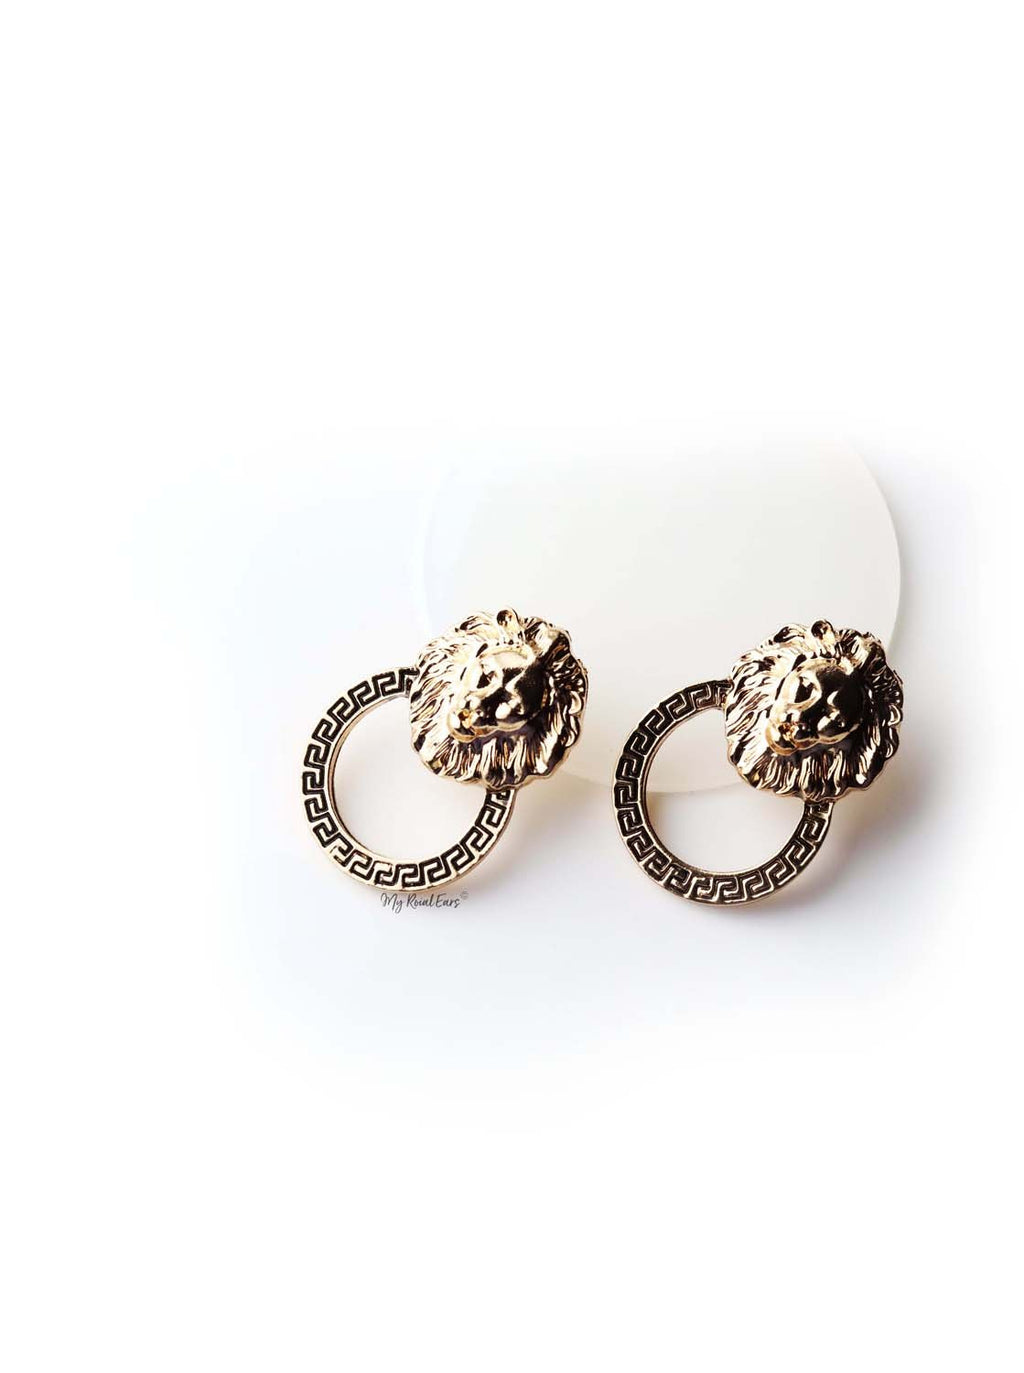 Apollo- lion shape statement stud - My Roial Ears LTD